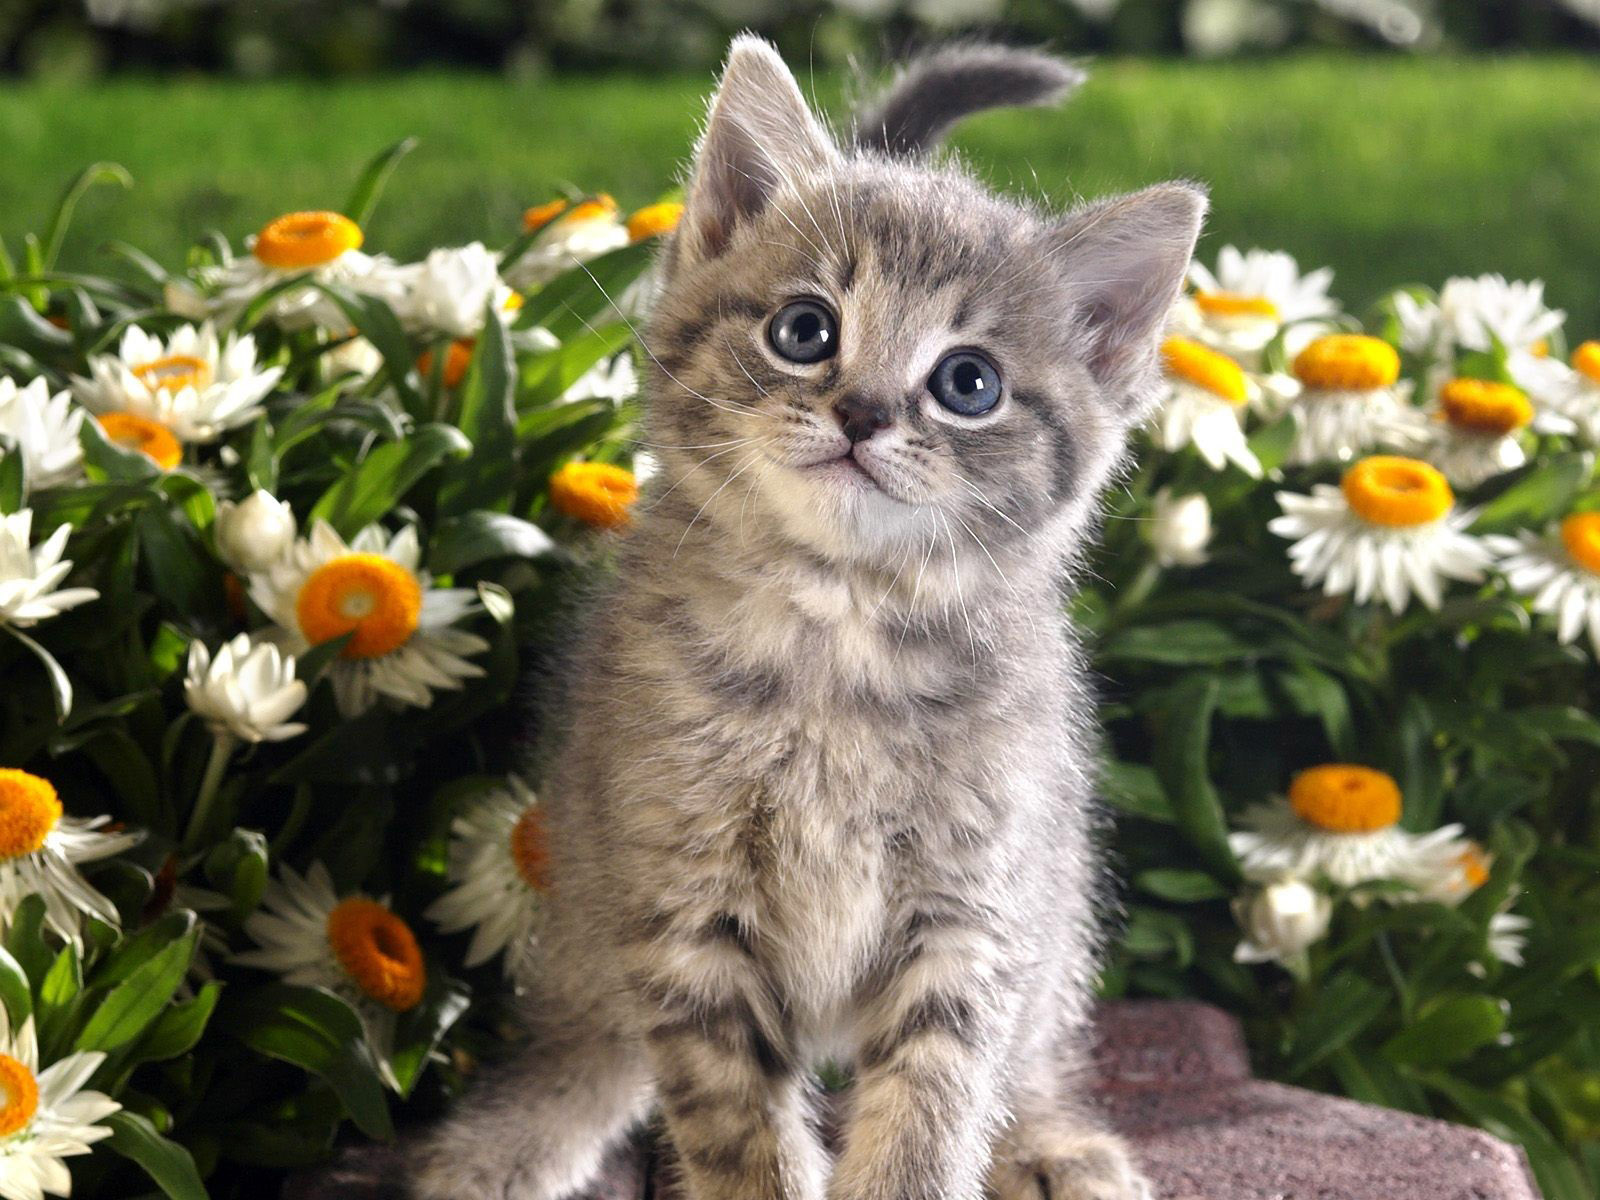 Kittens And Flowers Wallpaper Flowers Cats Animals Kittens